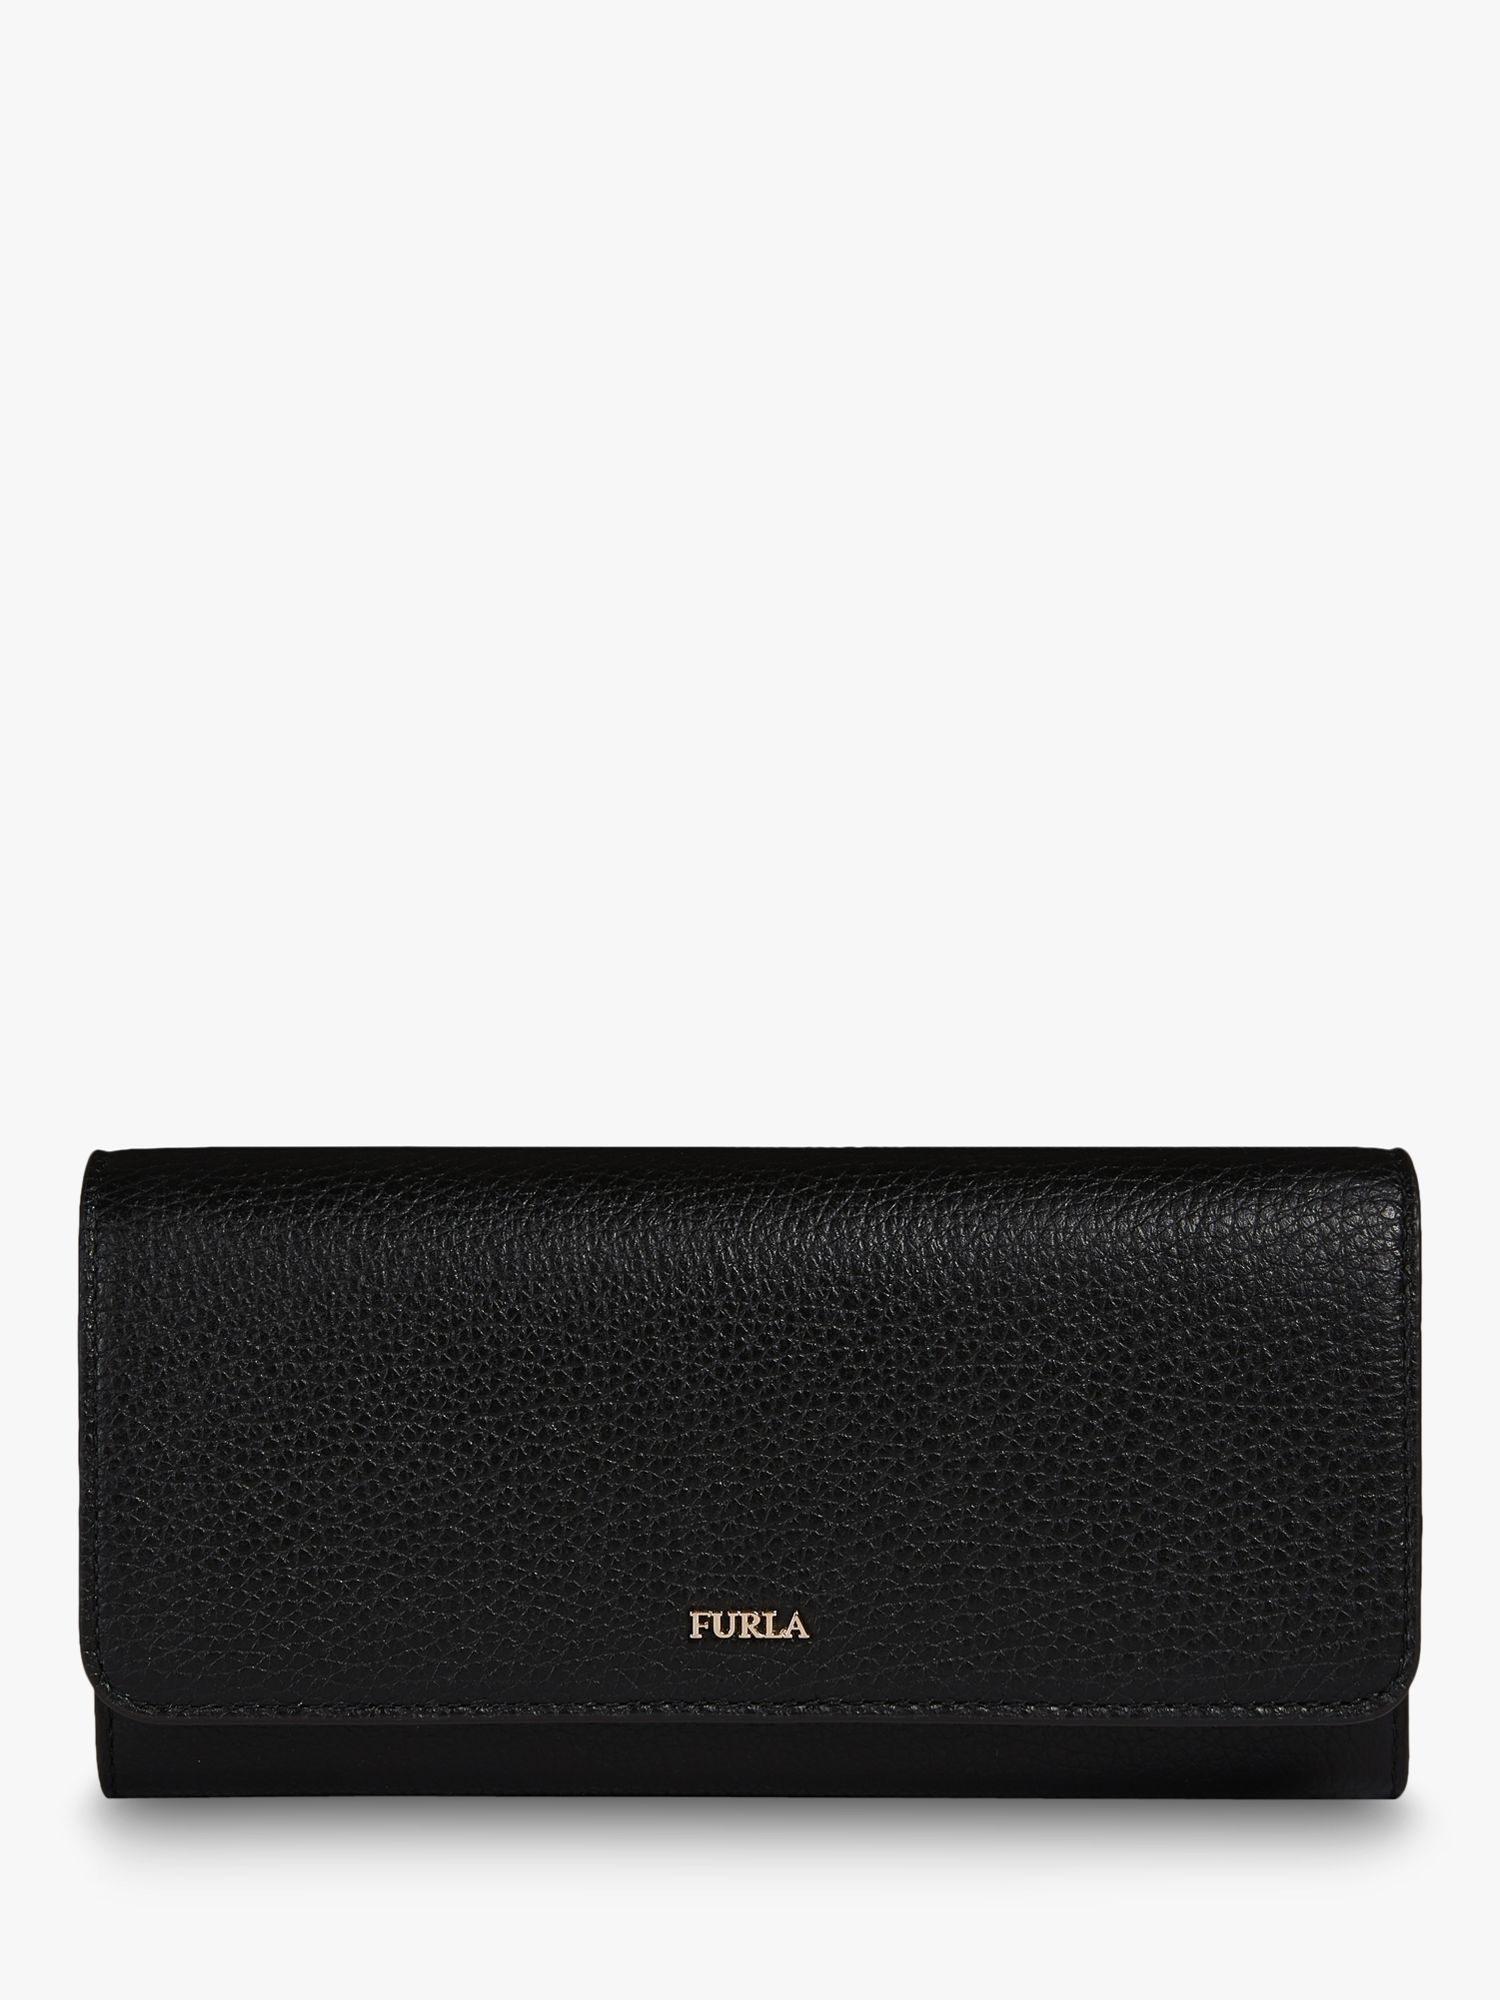 Furla Furla Babylon Leather Flap Over Purse